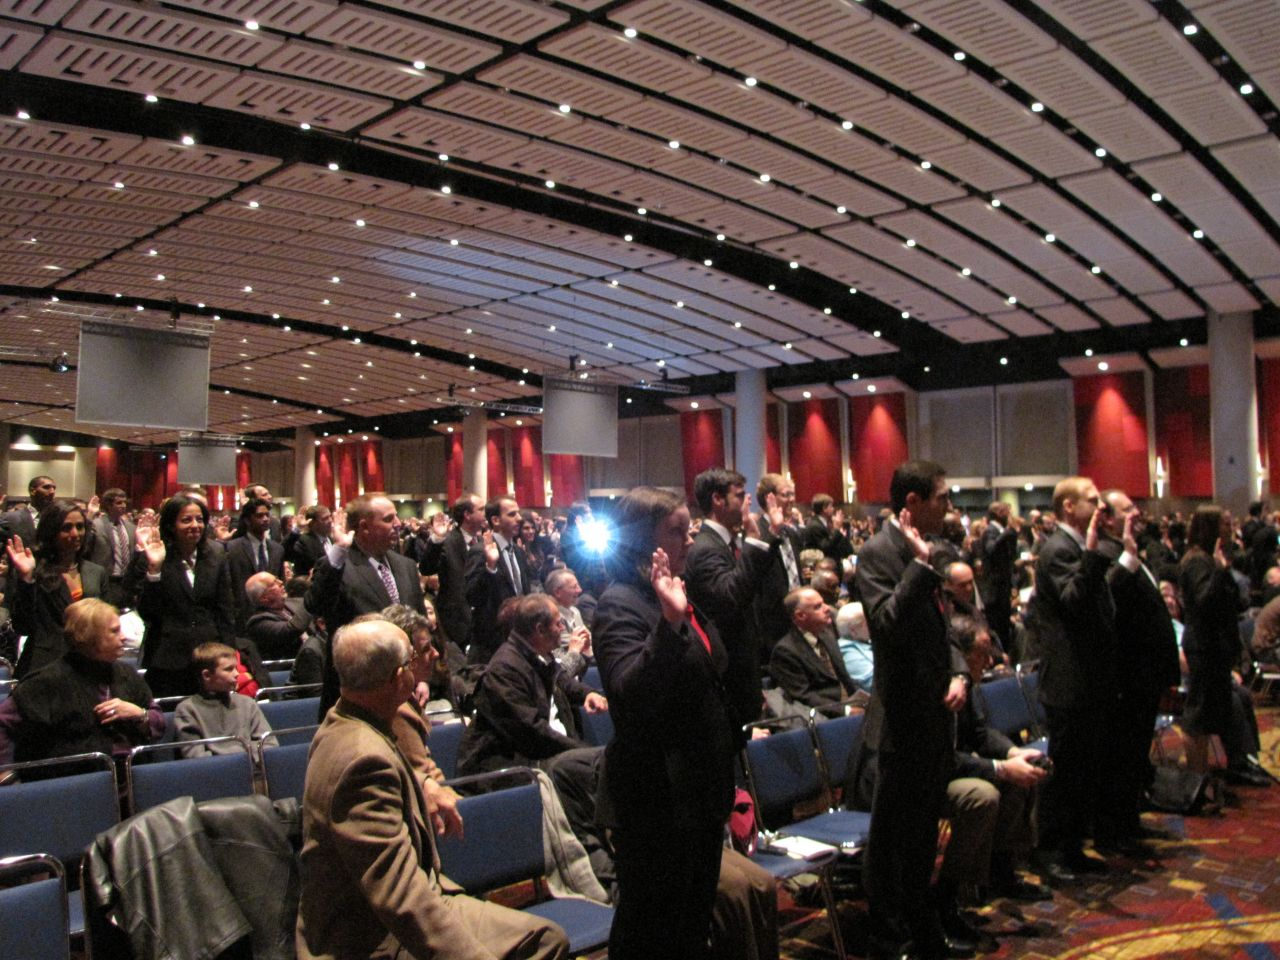 Over 1,800 new lawyers were sworn-in on Thursday at McCormick Place.